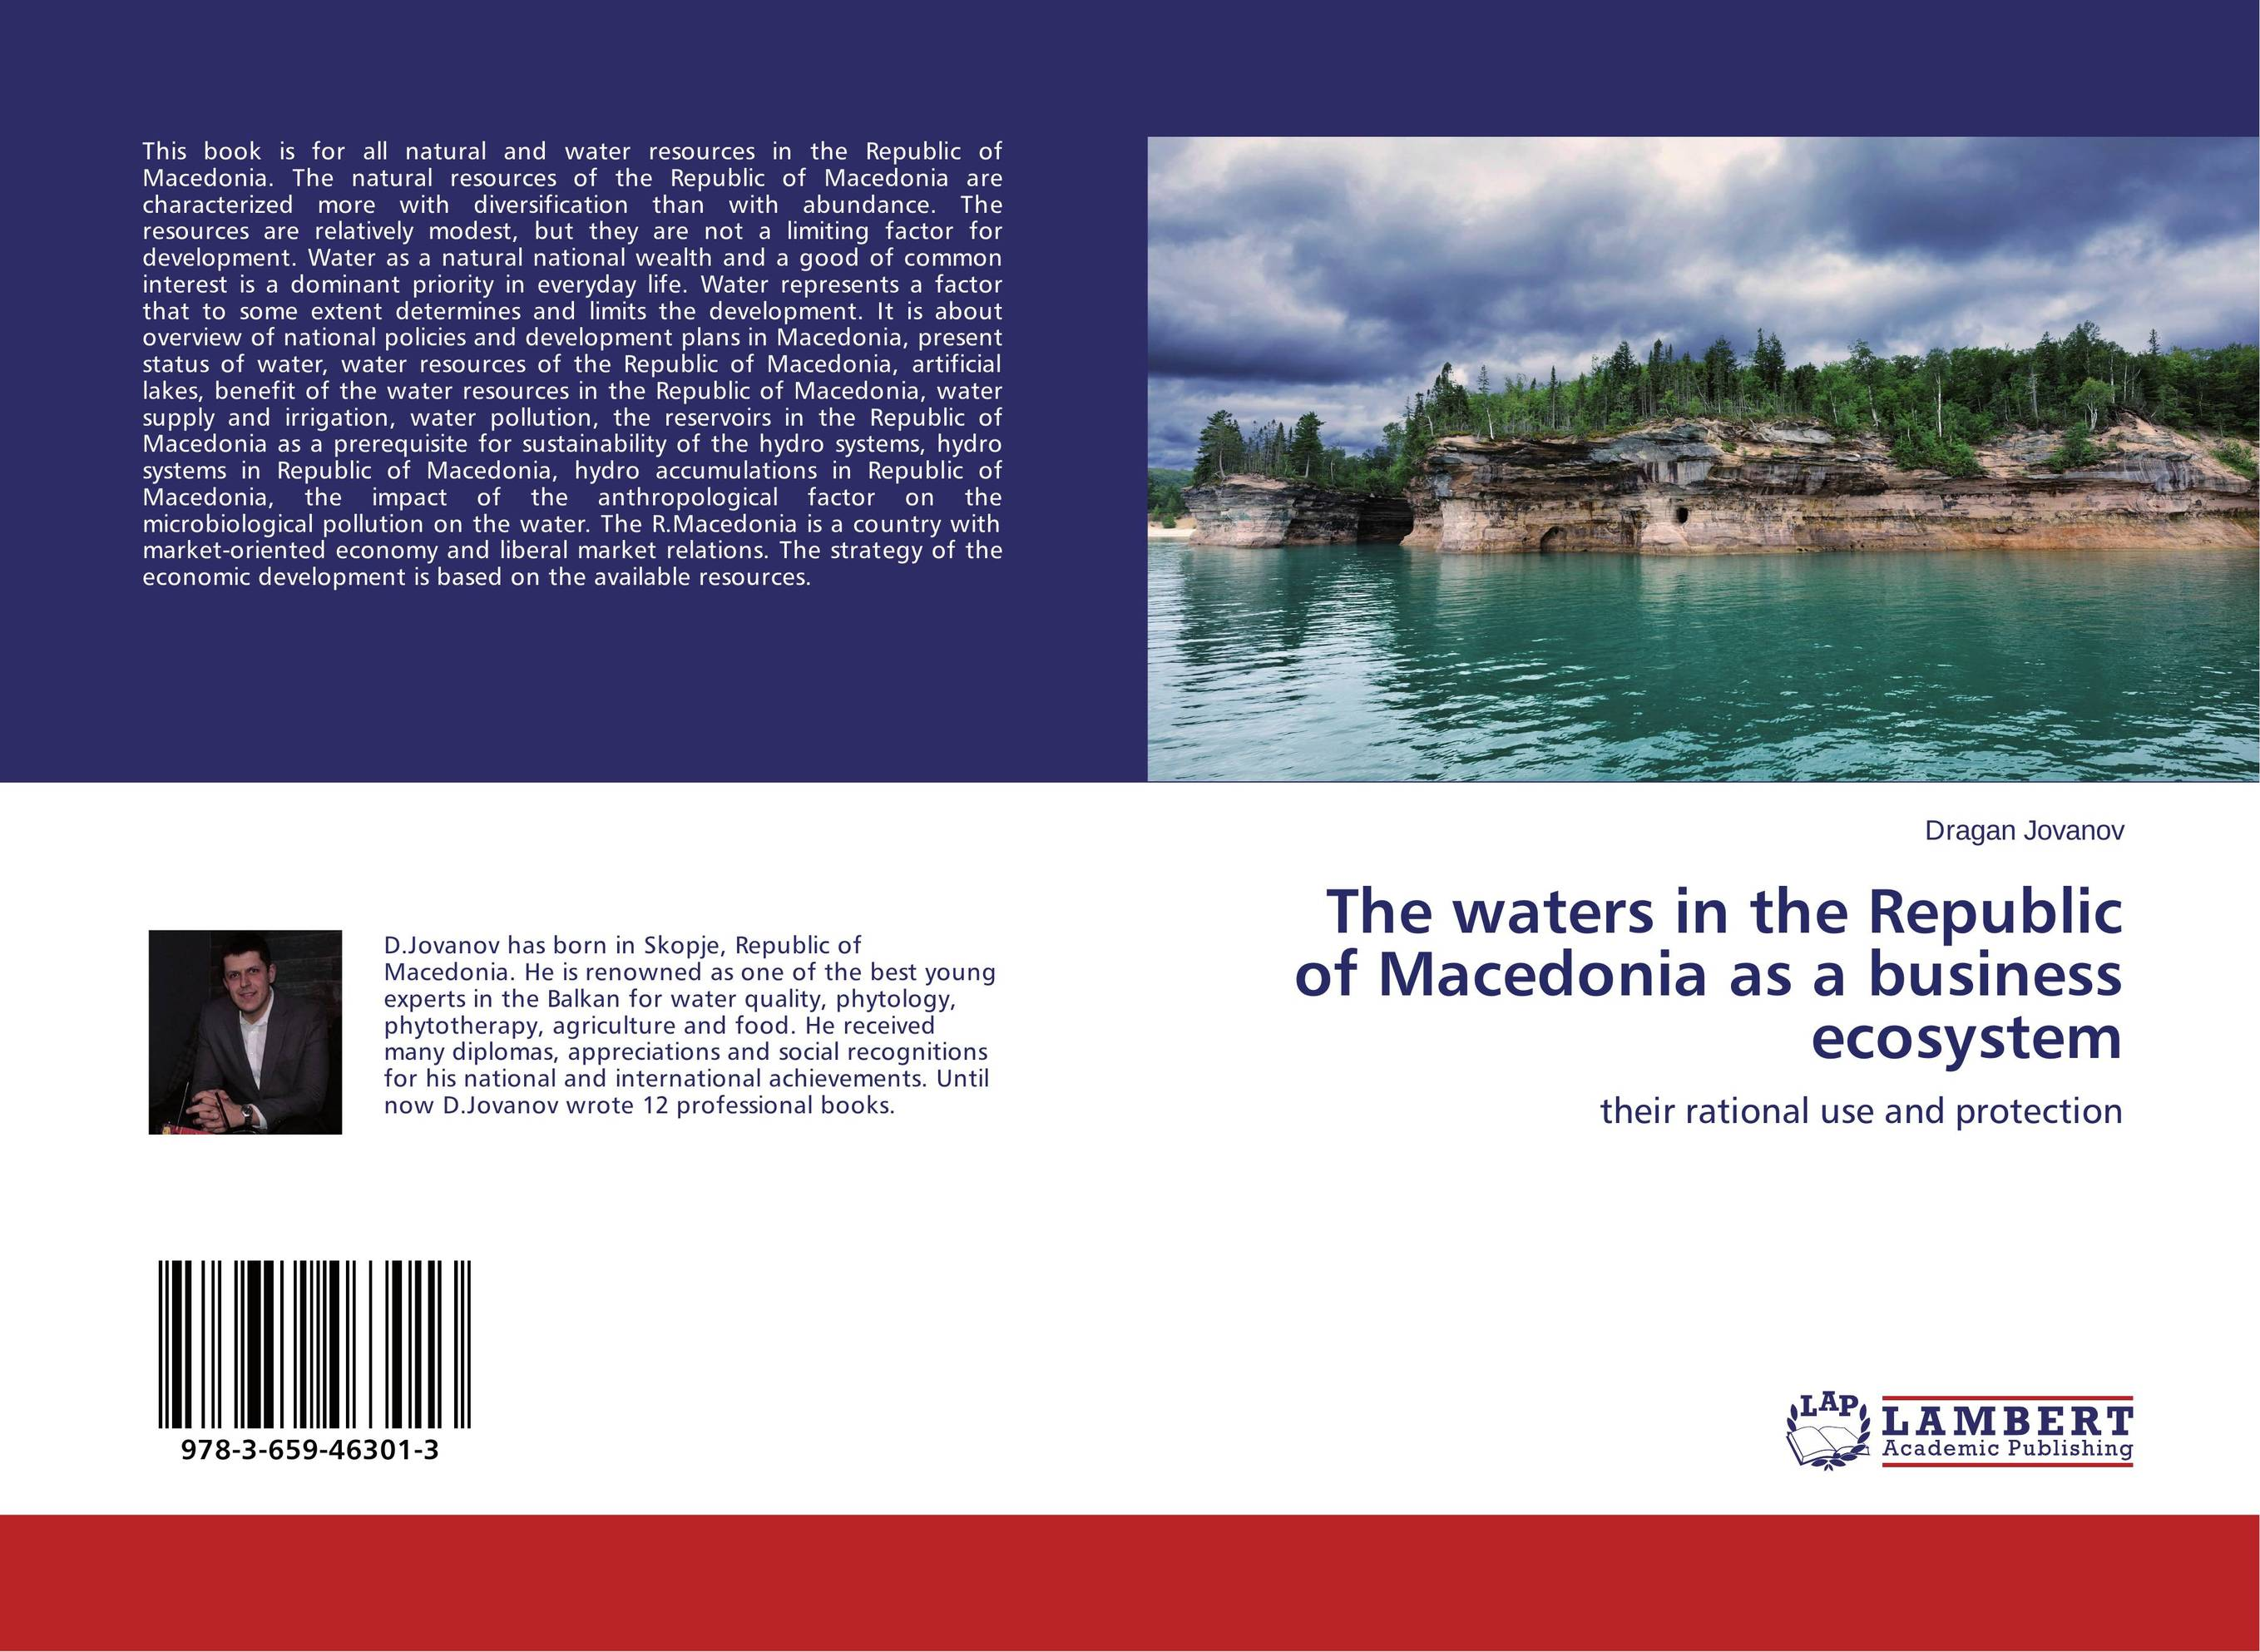 The waters in the Republic of Macedonia as a business ecosystem